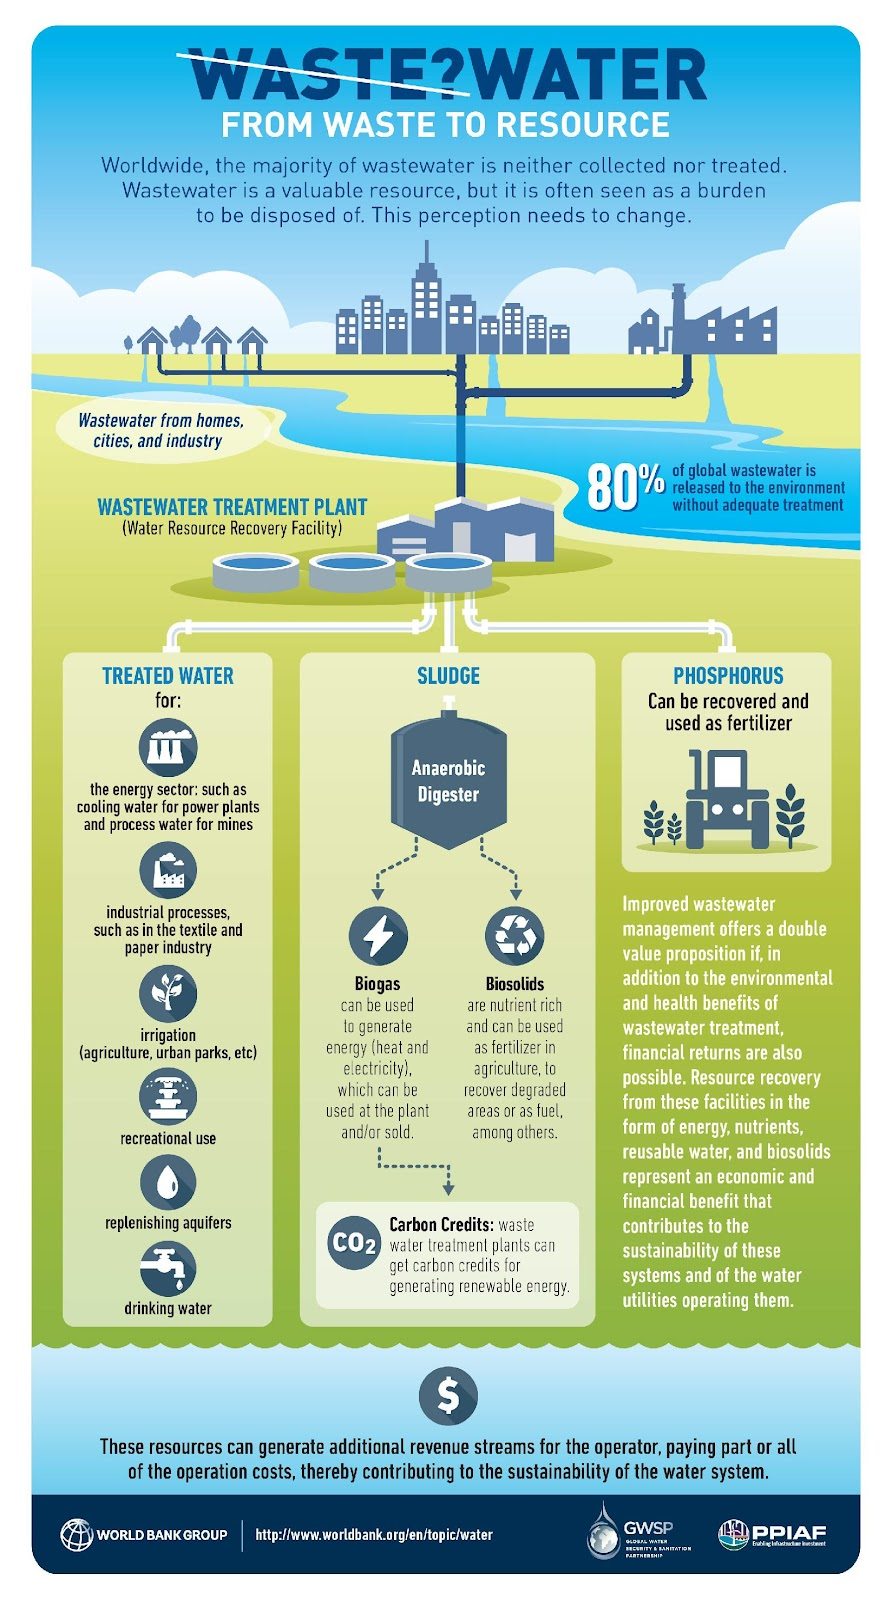 Macintosh HD:Users:annadelgado:Dropbox:WB:Waste to Resource:Initiative Waste to Resource:4. Comms Material:Infographic:WasteWater_Resource_infograqph_JPGs:WB_WasteWater_Resource_v6_lrg.jpg